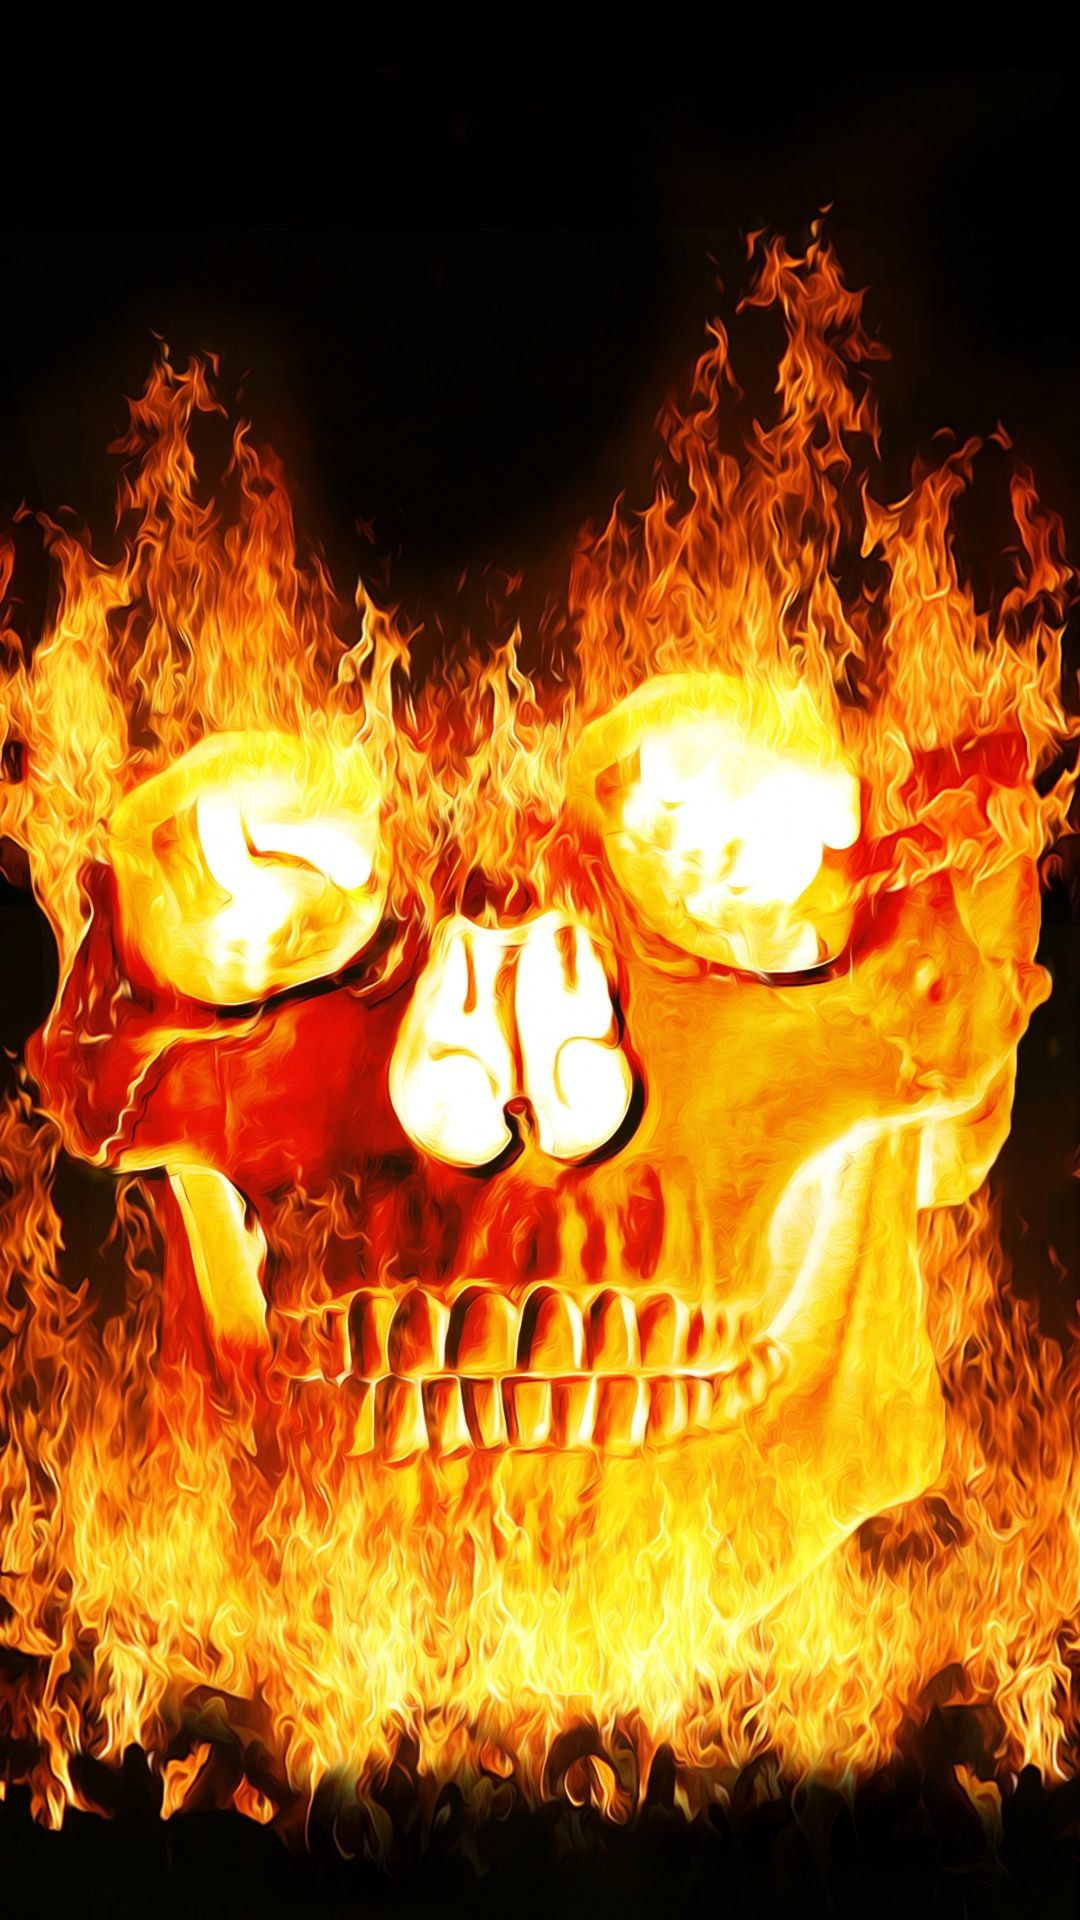 Cool Iphone X Wallpapers Live Skulls On Fire Wallpaper 183 ① Wallpapertag